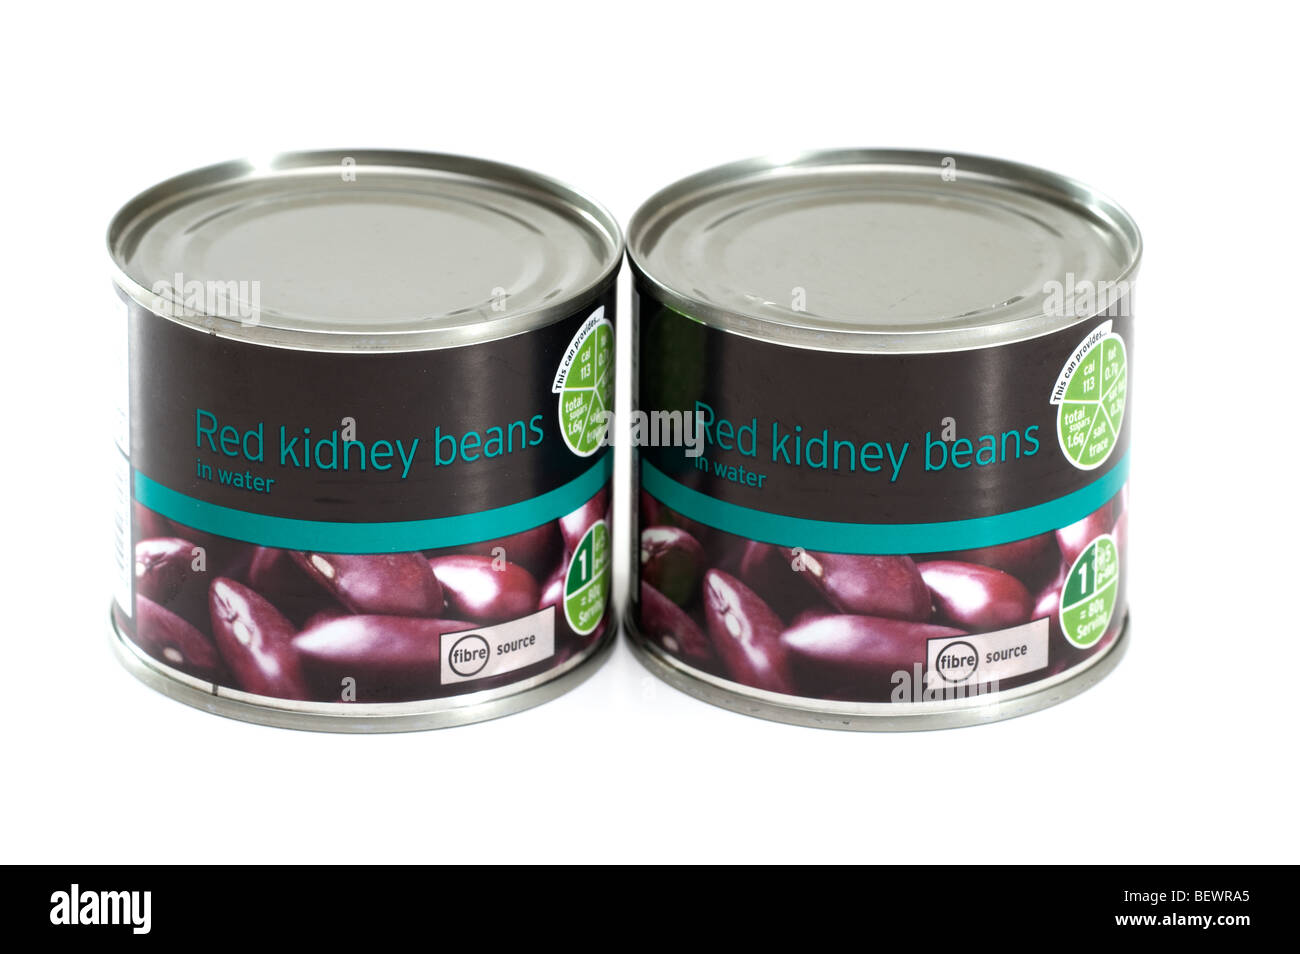 Two cans of red kidney beans - Stock Image